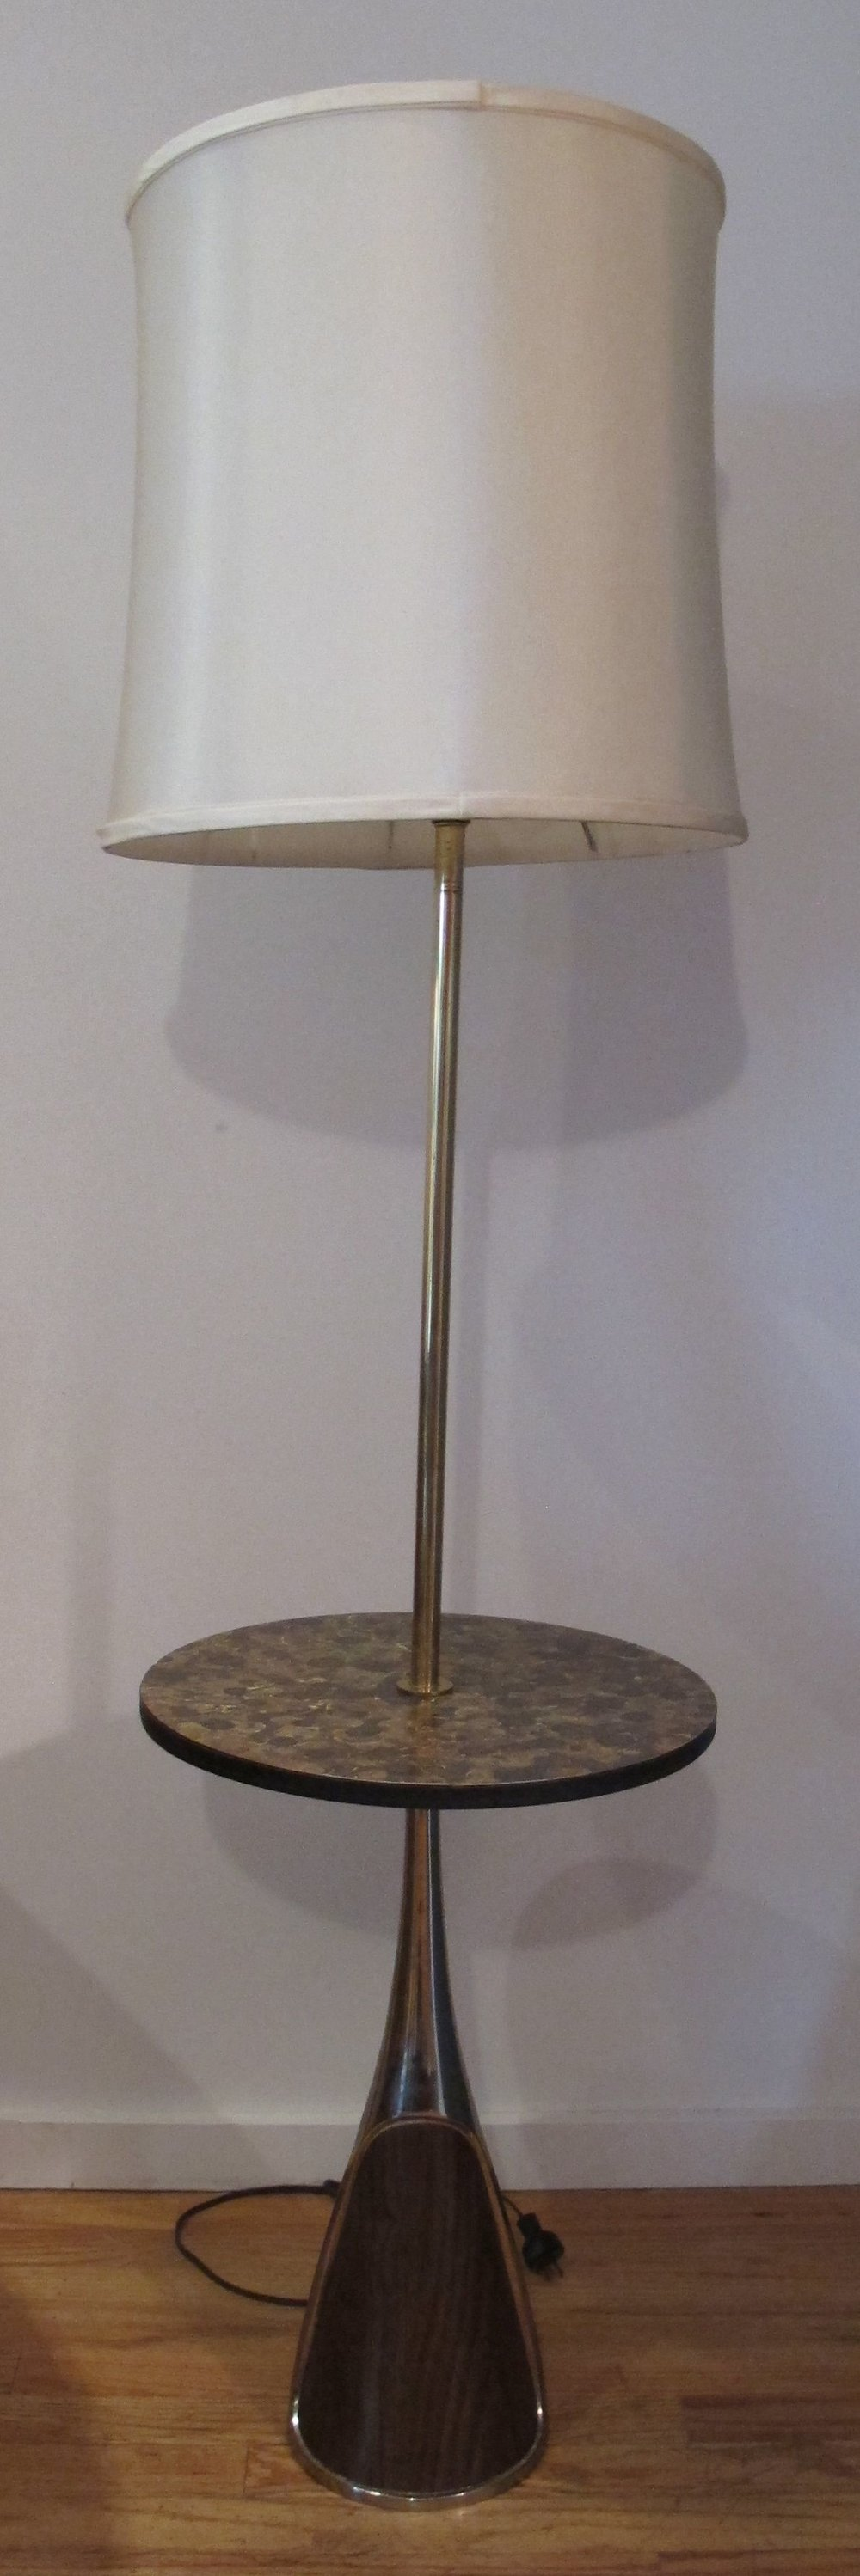 MID CENTURY WALNUT AND BRASS FLOOR LAMP WITH FLOATING TABLE BY LAUREL